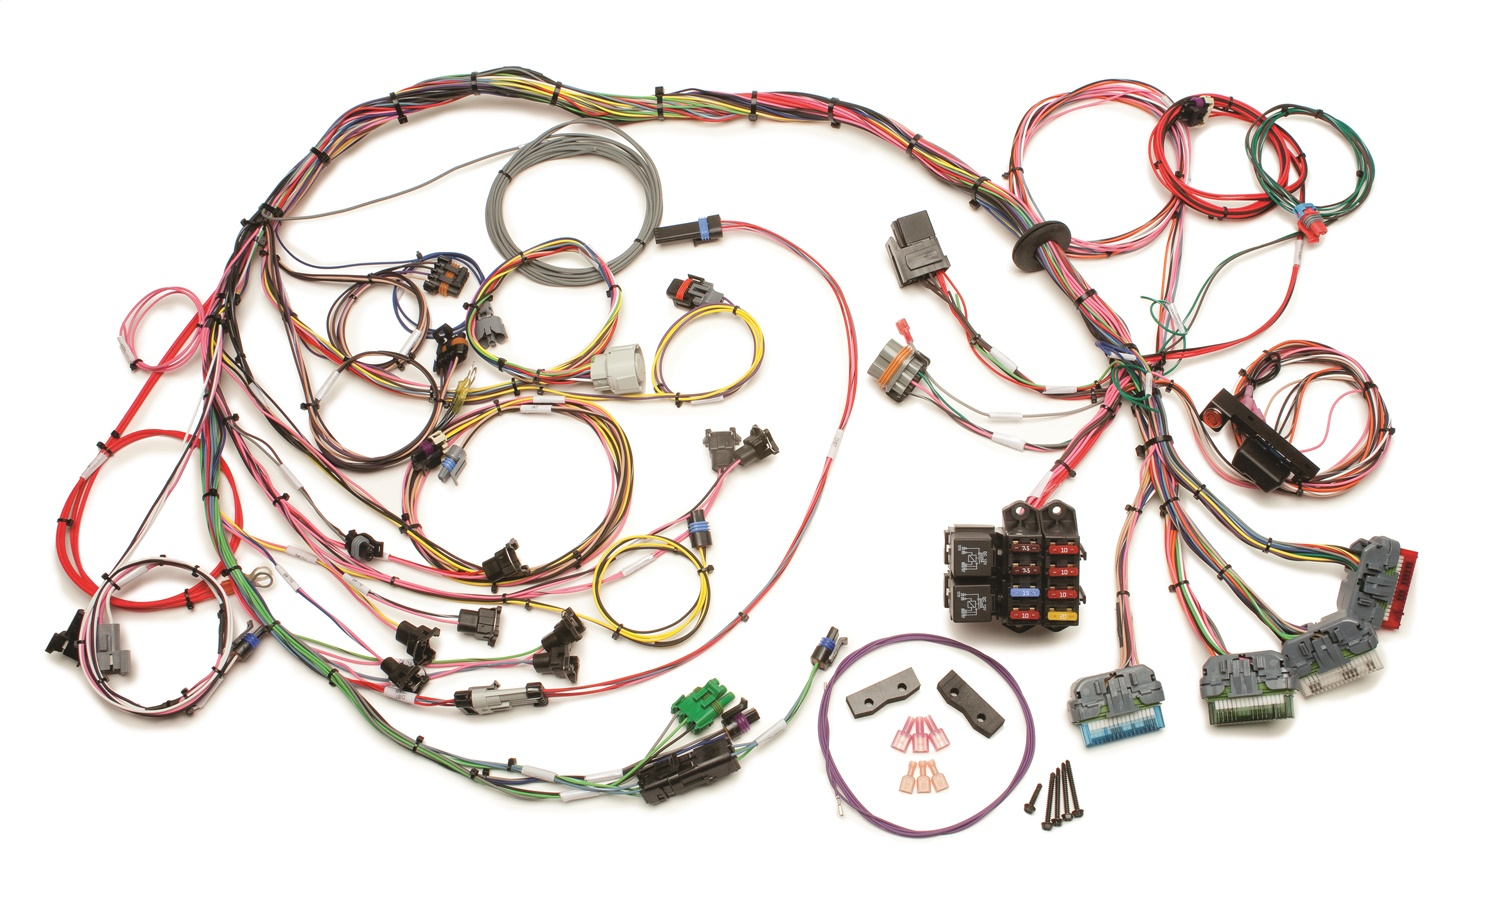 Painless Wiring Harness Ebay - Lcx.convertigo.de • on painless auto wiring harness, painless wiring metal panel, painless wiring harness chevy, painless universal wiring harness, painless wiring manual, painless automotive wiring,